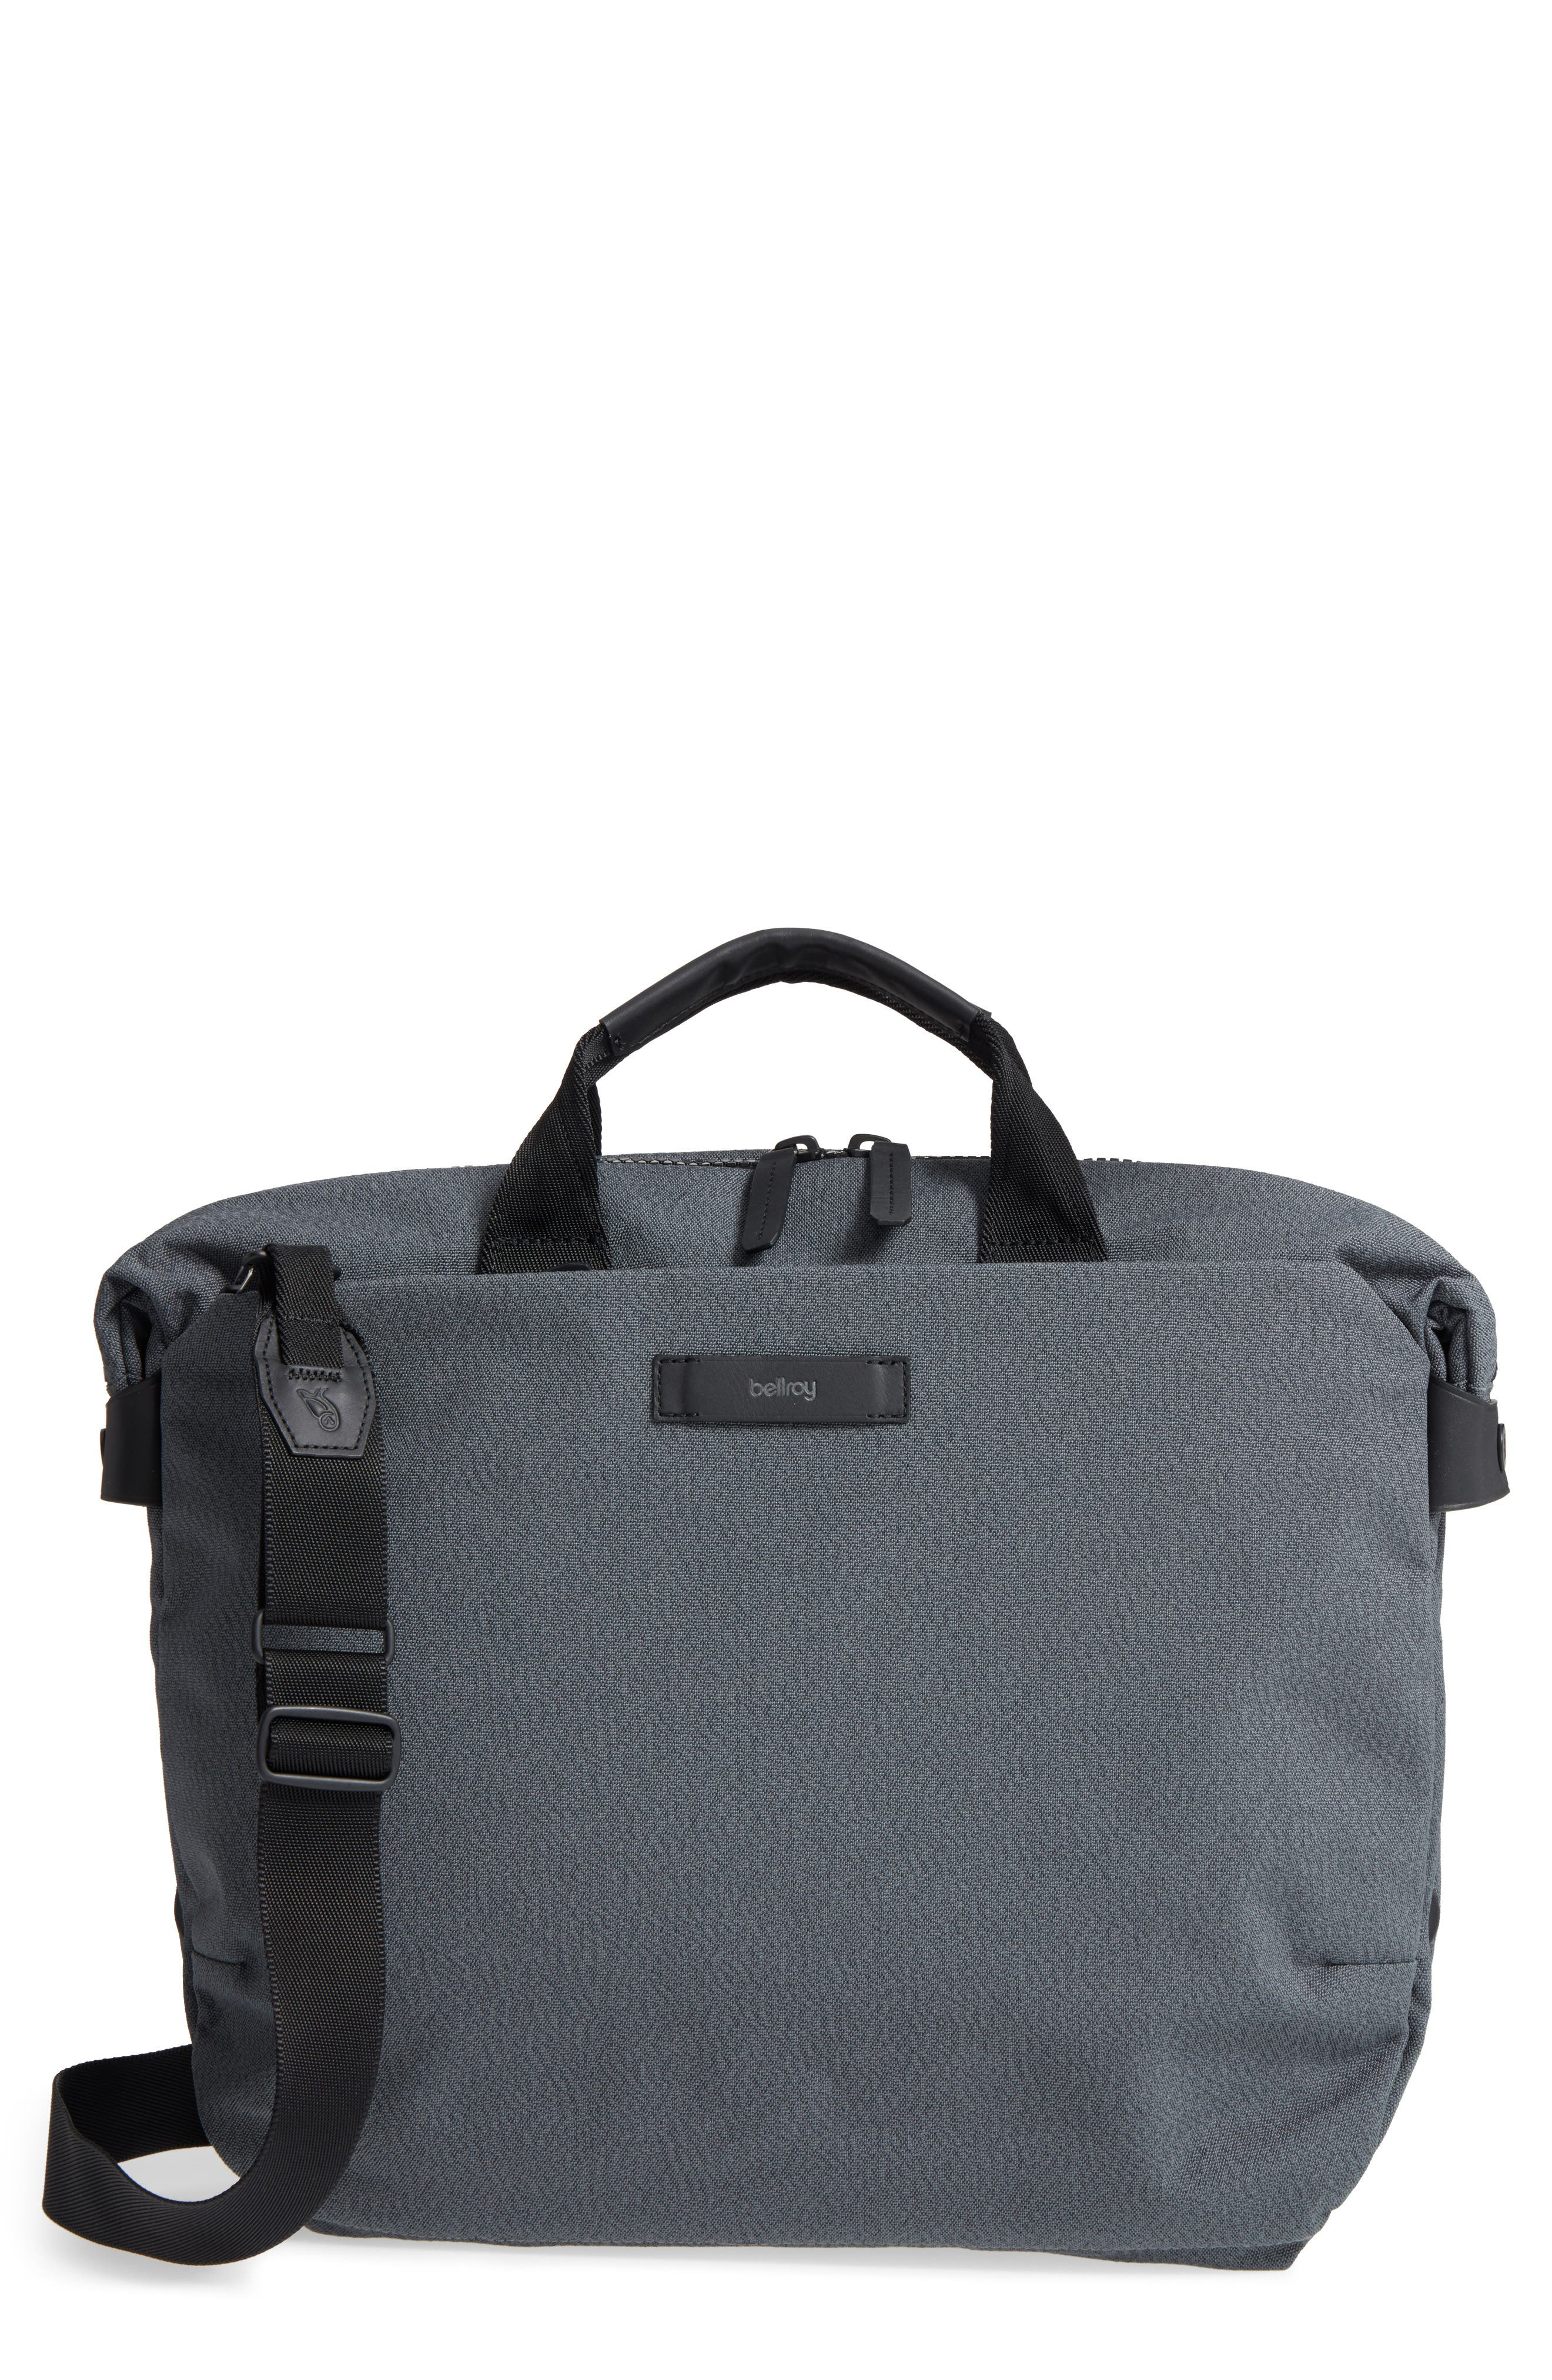 Alternate Image 1 Selected - Bellroy Duo Briefcase